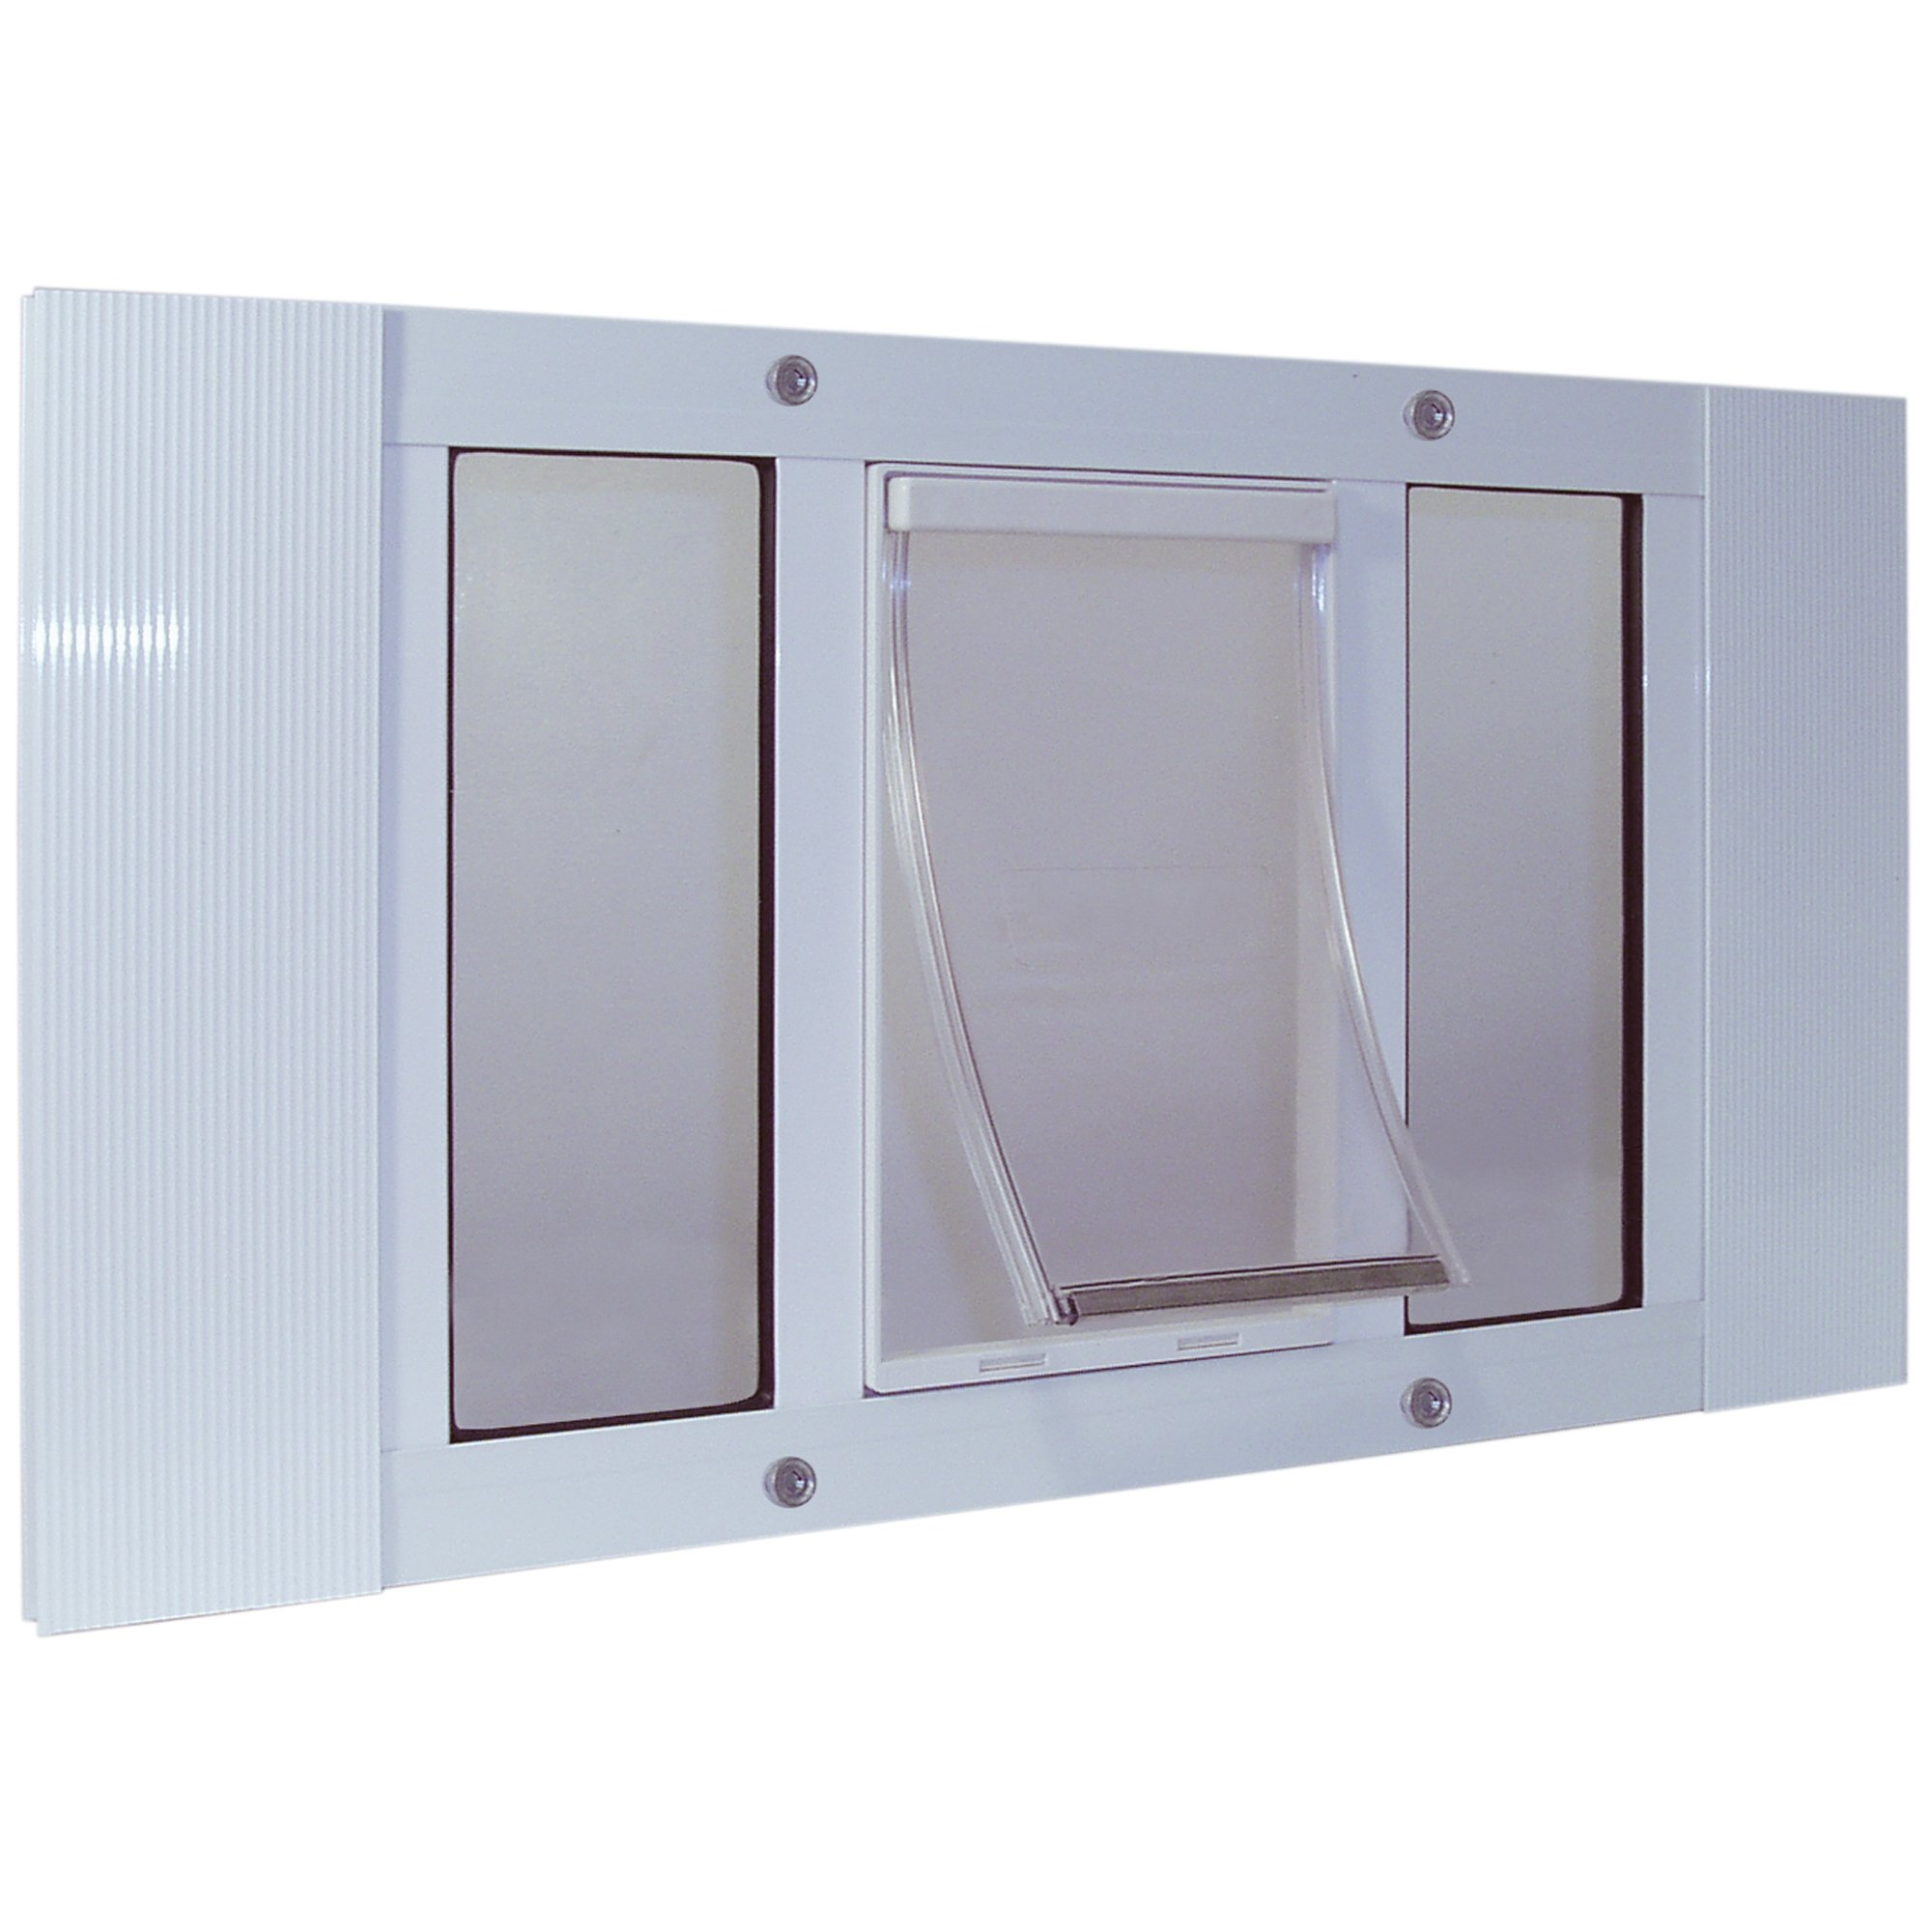 Ideal Pet Products 33SWDM Aluminum Sash Window Pet Door, Medium/7'' x 11.25'', White